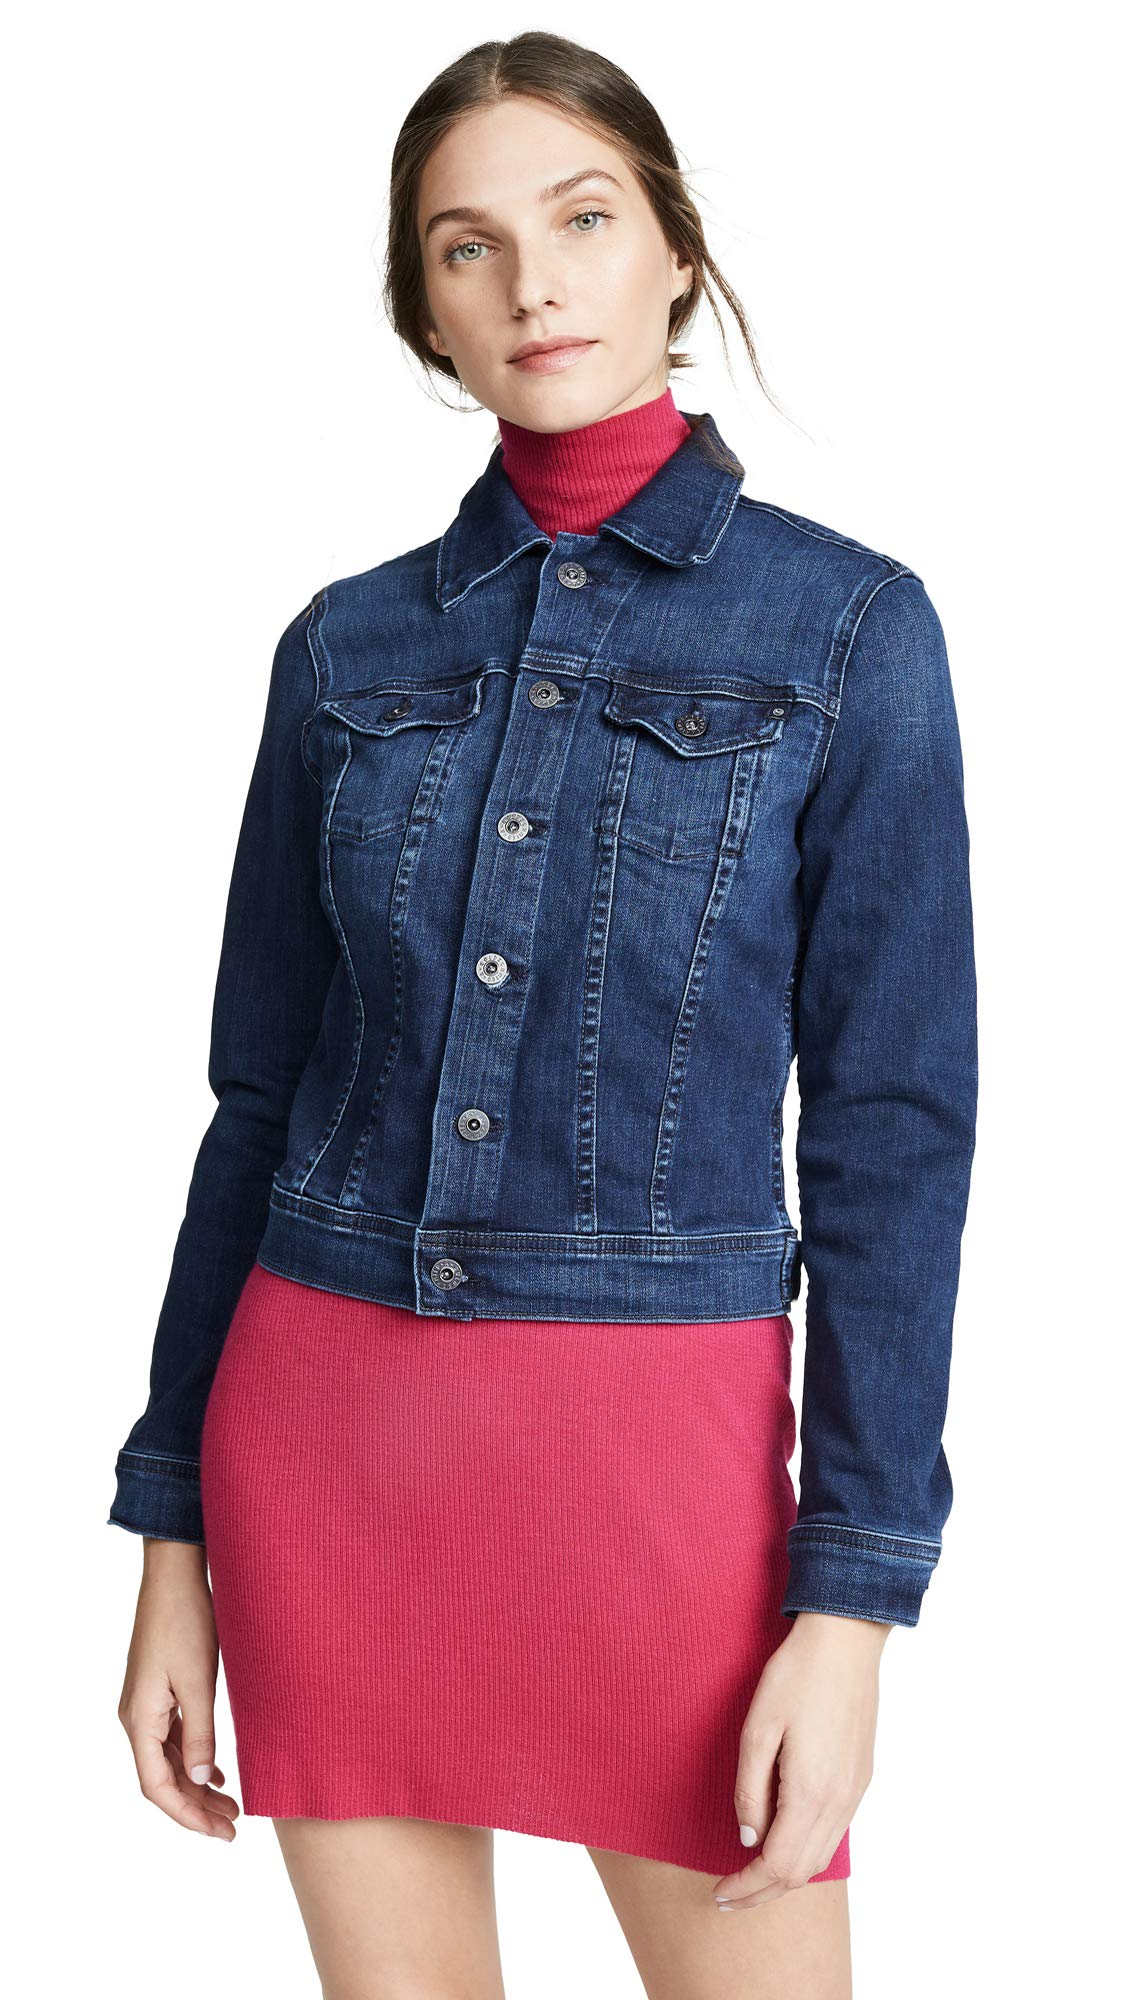 AG Adriano Goldschmied Women's Robyn Jacket, Pinnacle Blue, Small